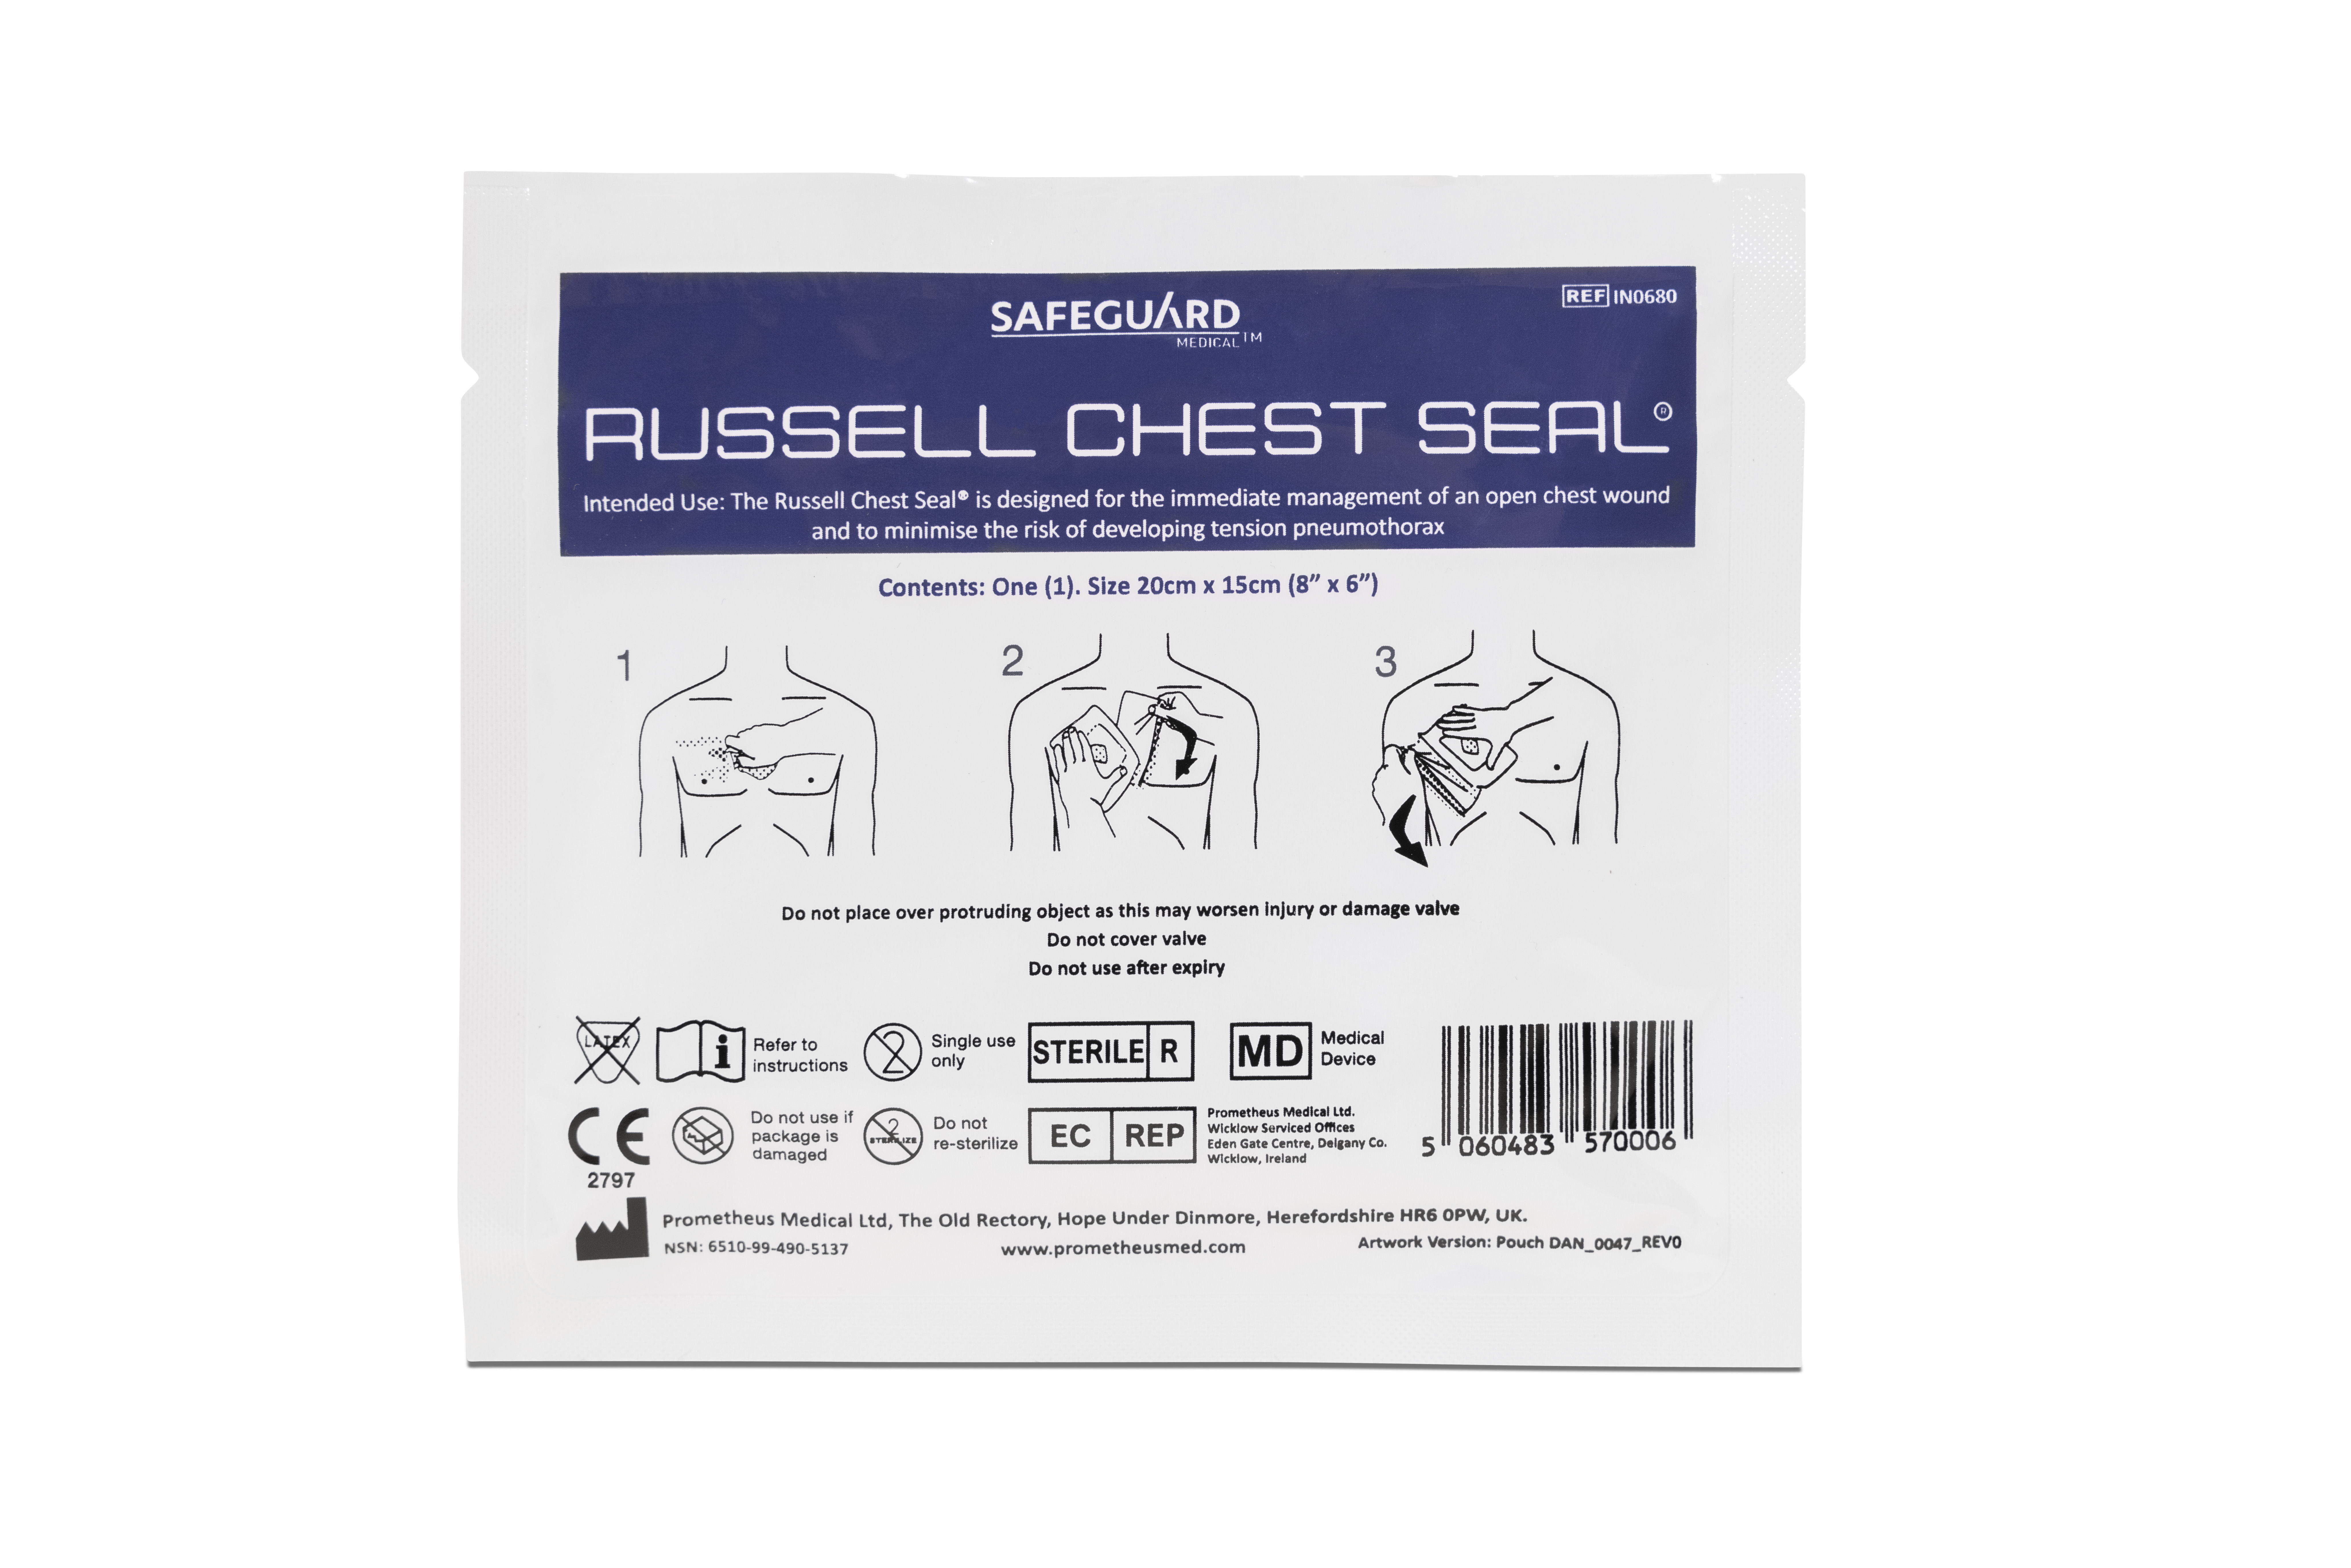 Russell Chest Seal® (RCS)